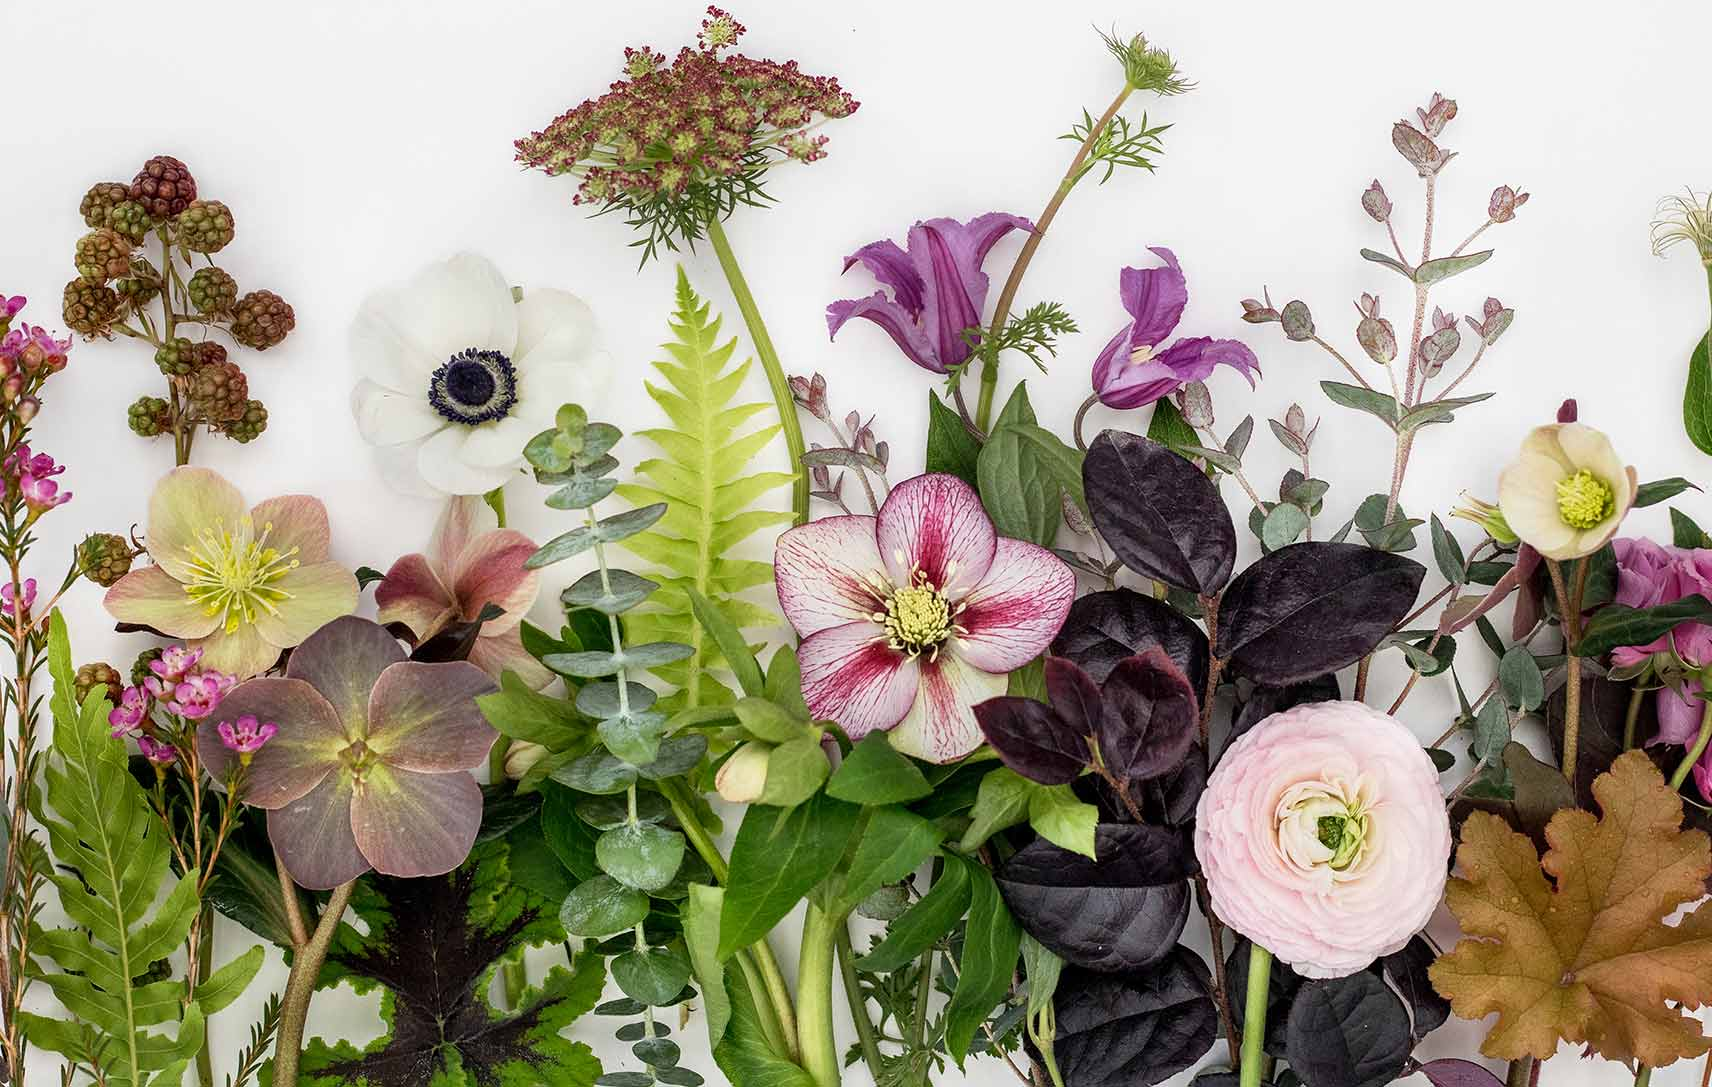 An image of assorted plants and flowers for spring banner